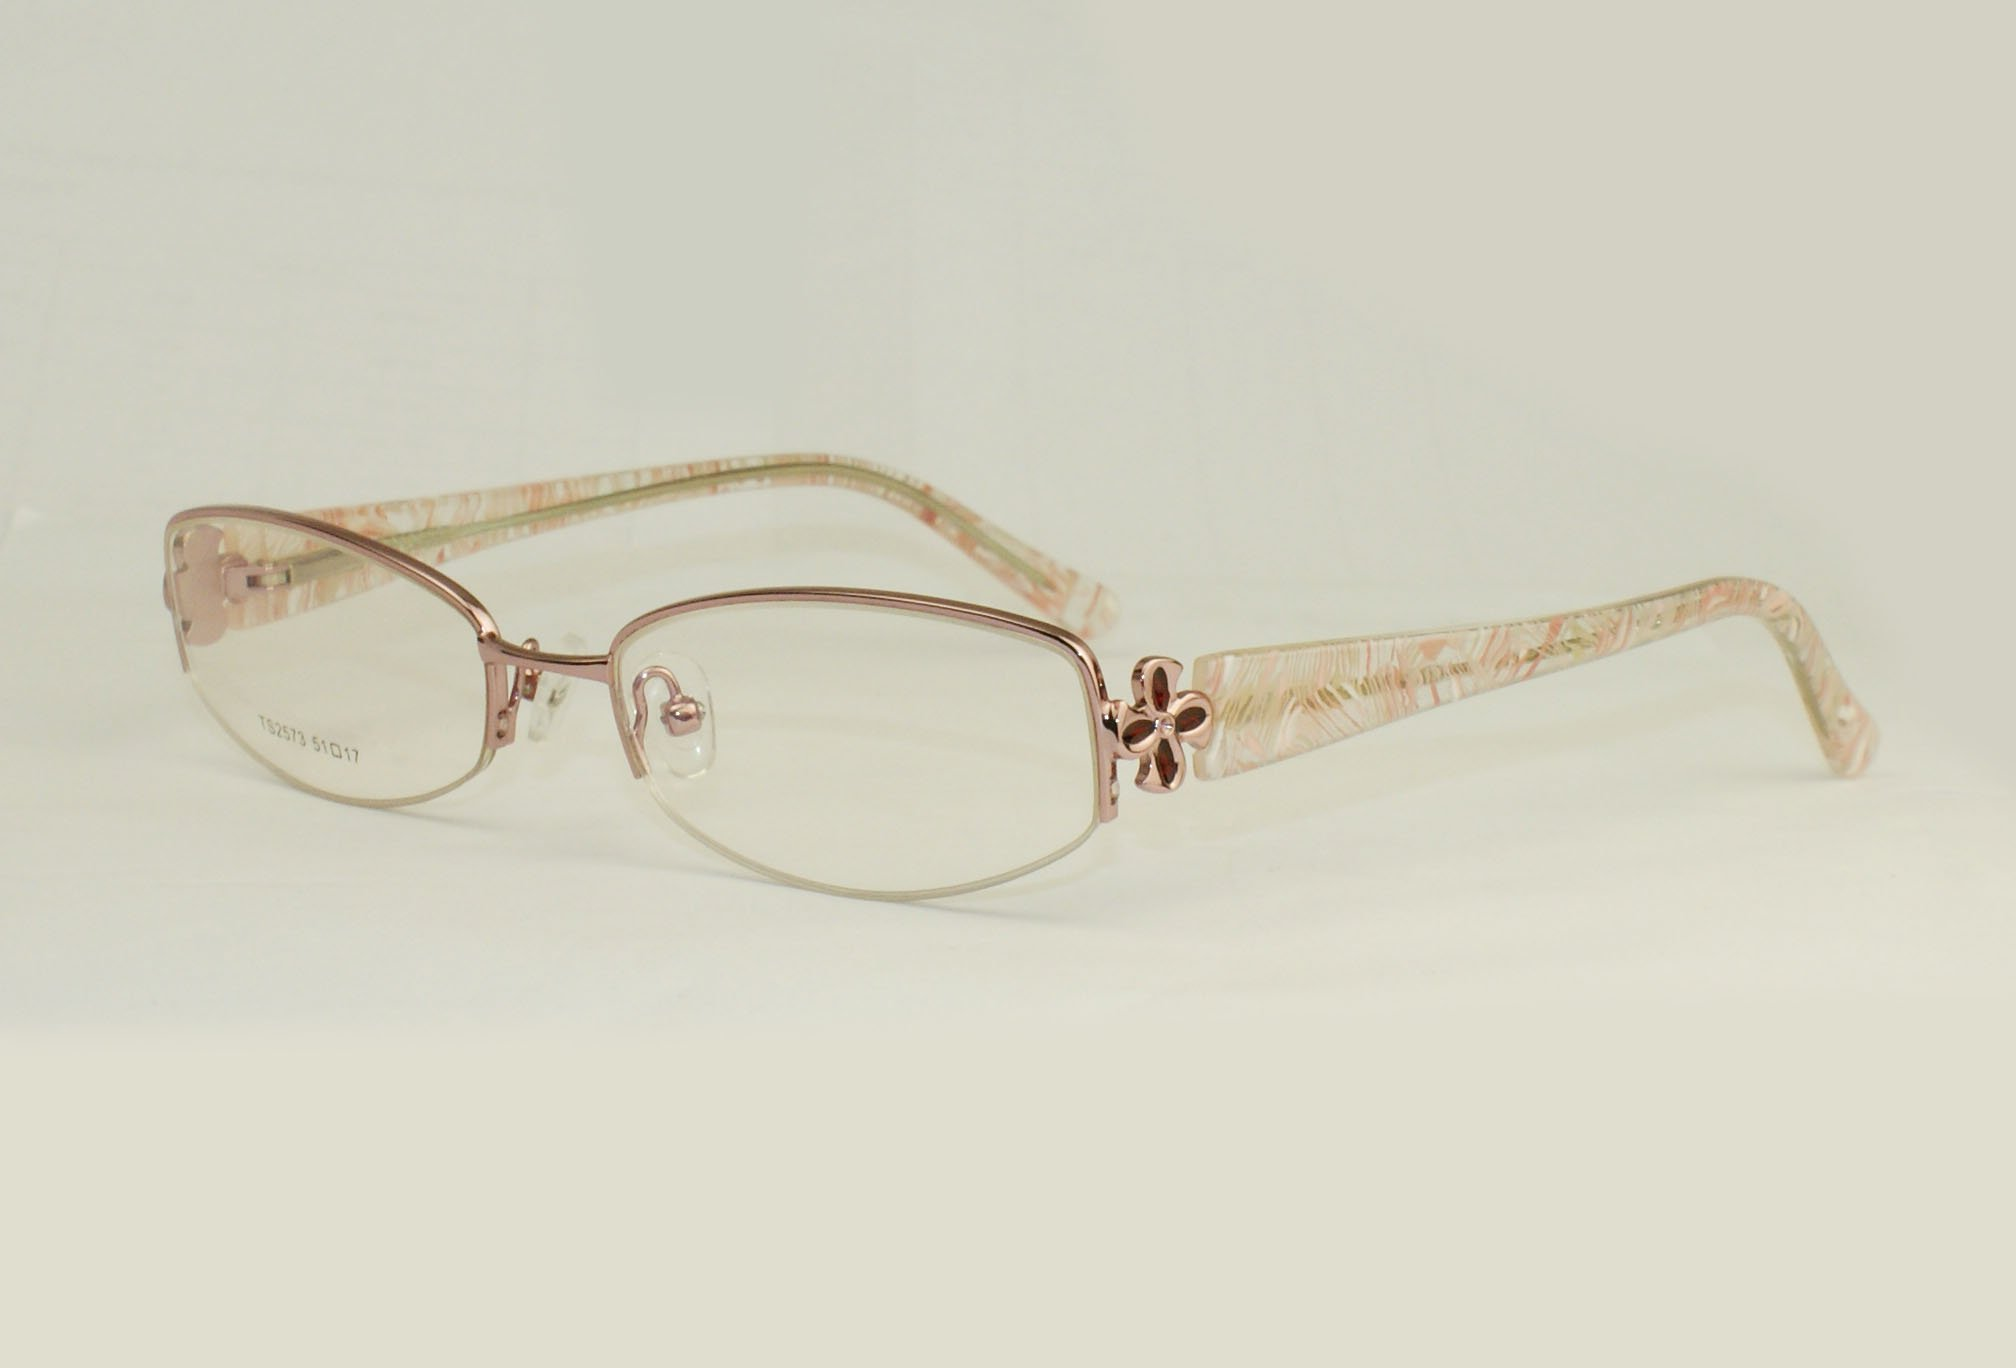 Eyeglass Frames Inexpensive : Cheap Eyeglass Frames 7d46